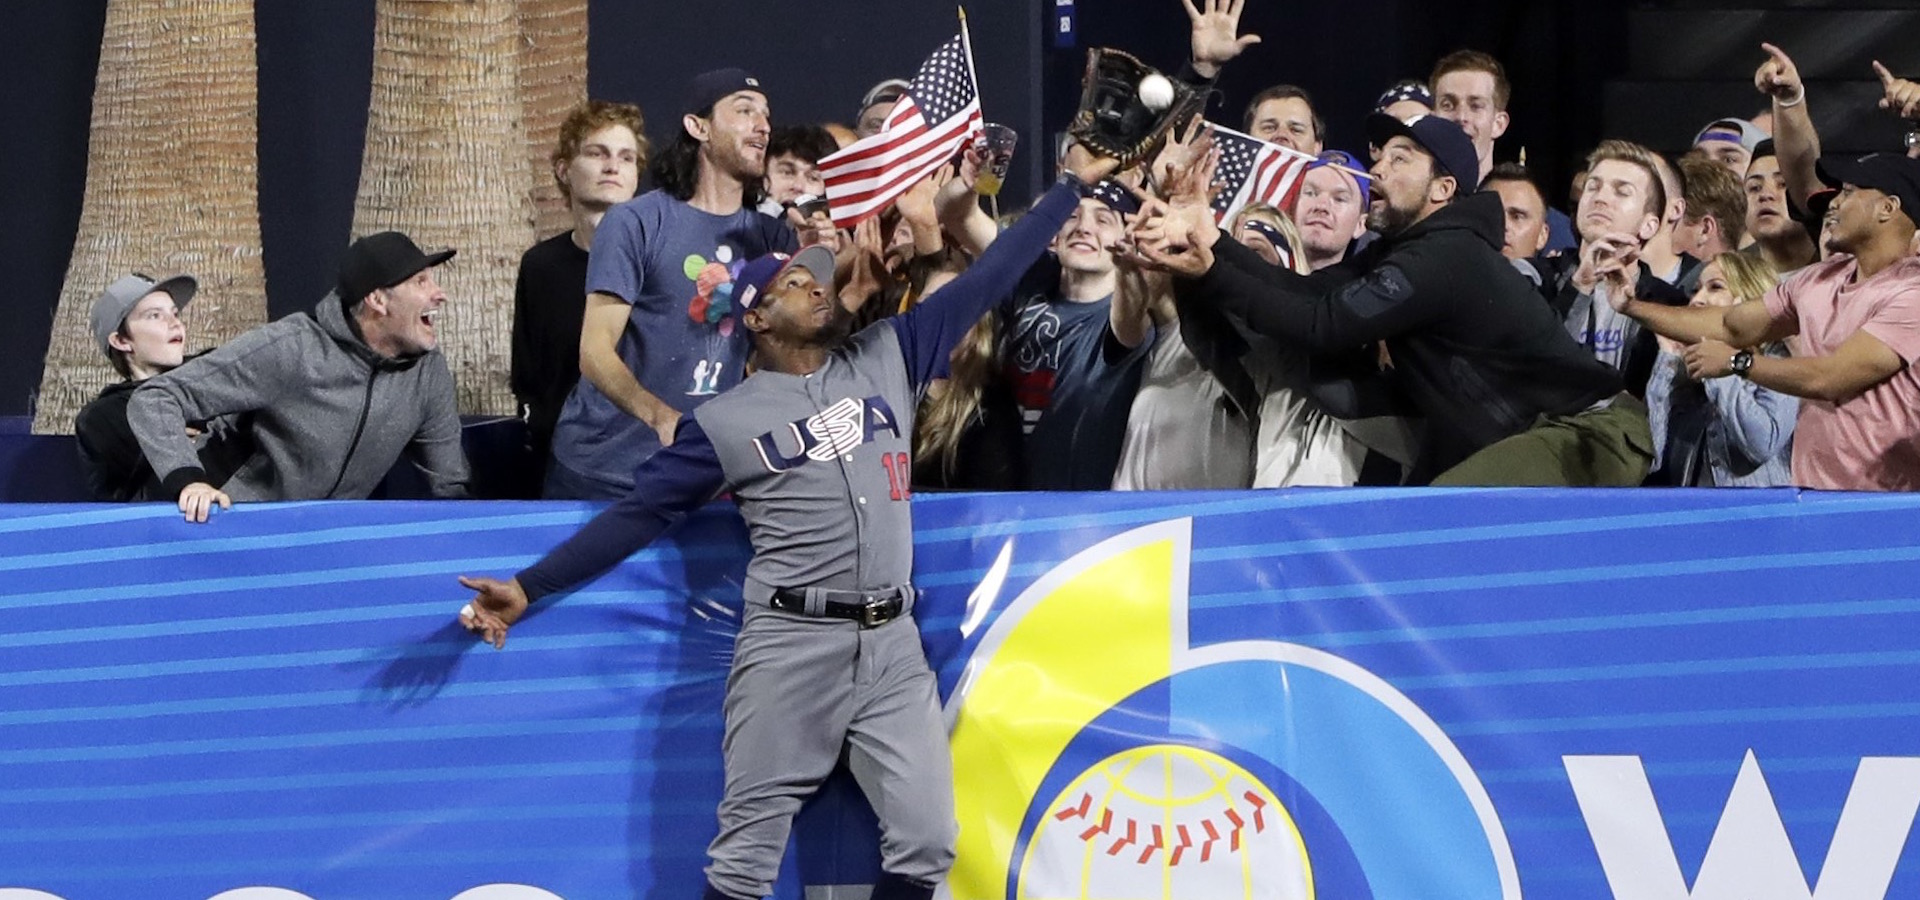 World Baseball Classic Win for Team USA Delivers an Iconic American Photo